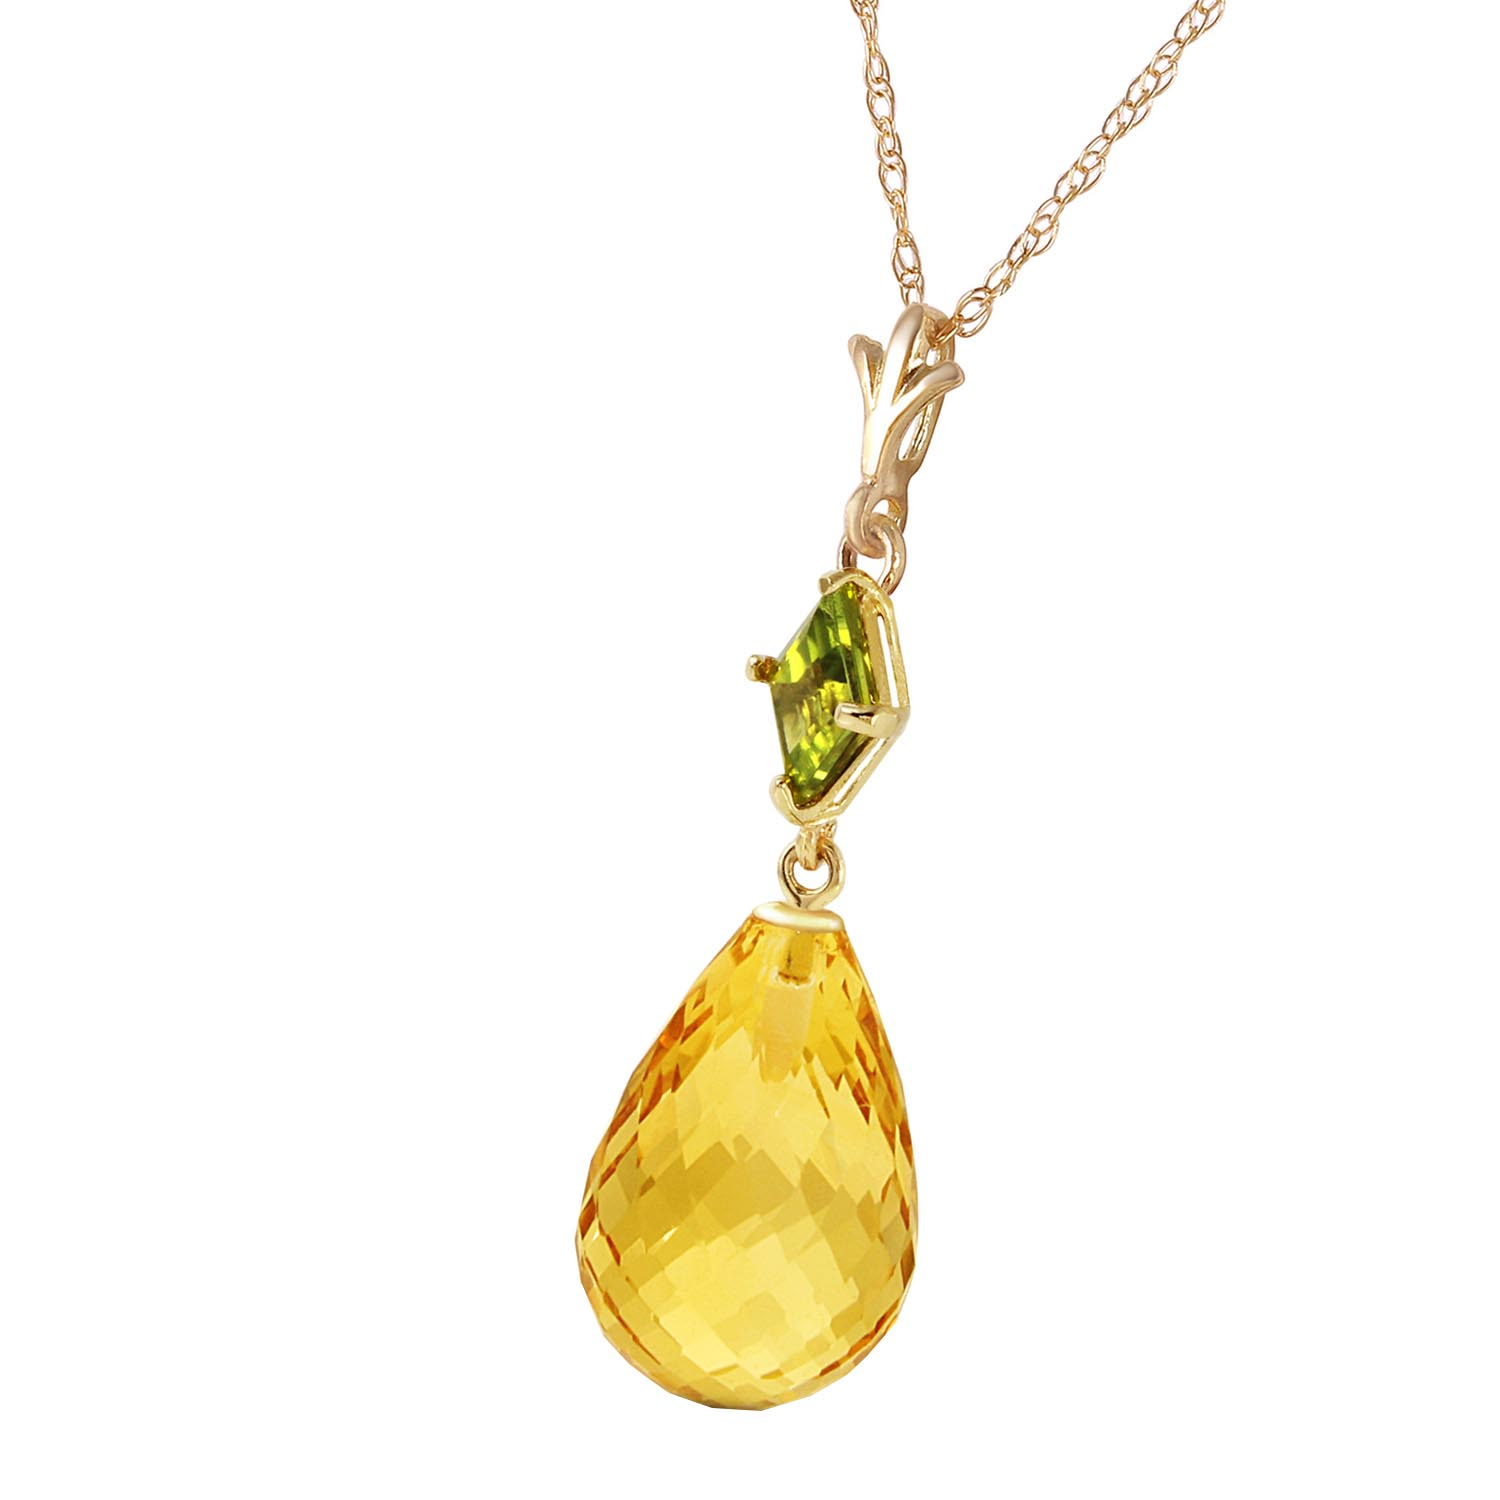 Citrine and Peridot Pendant Necklace 5.5ctw in 9ct Gold